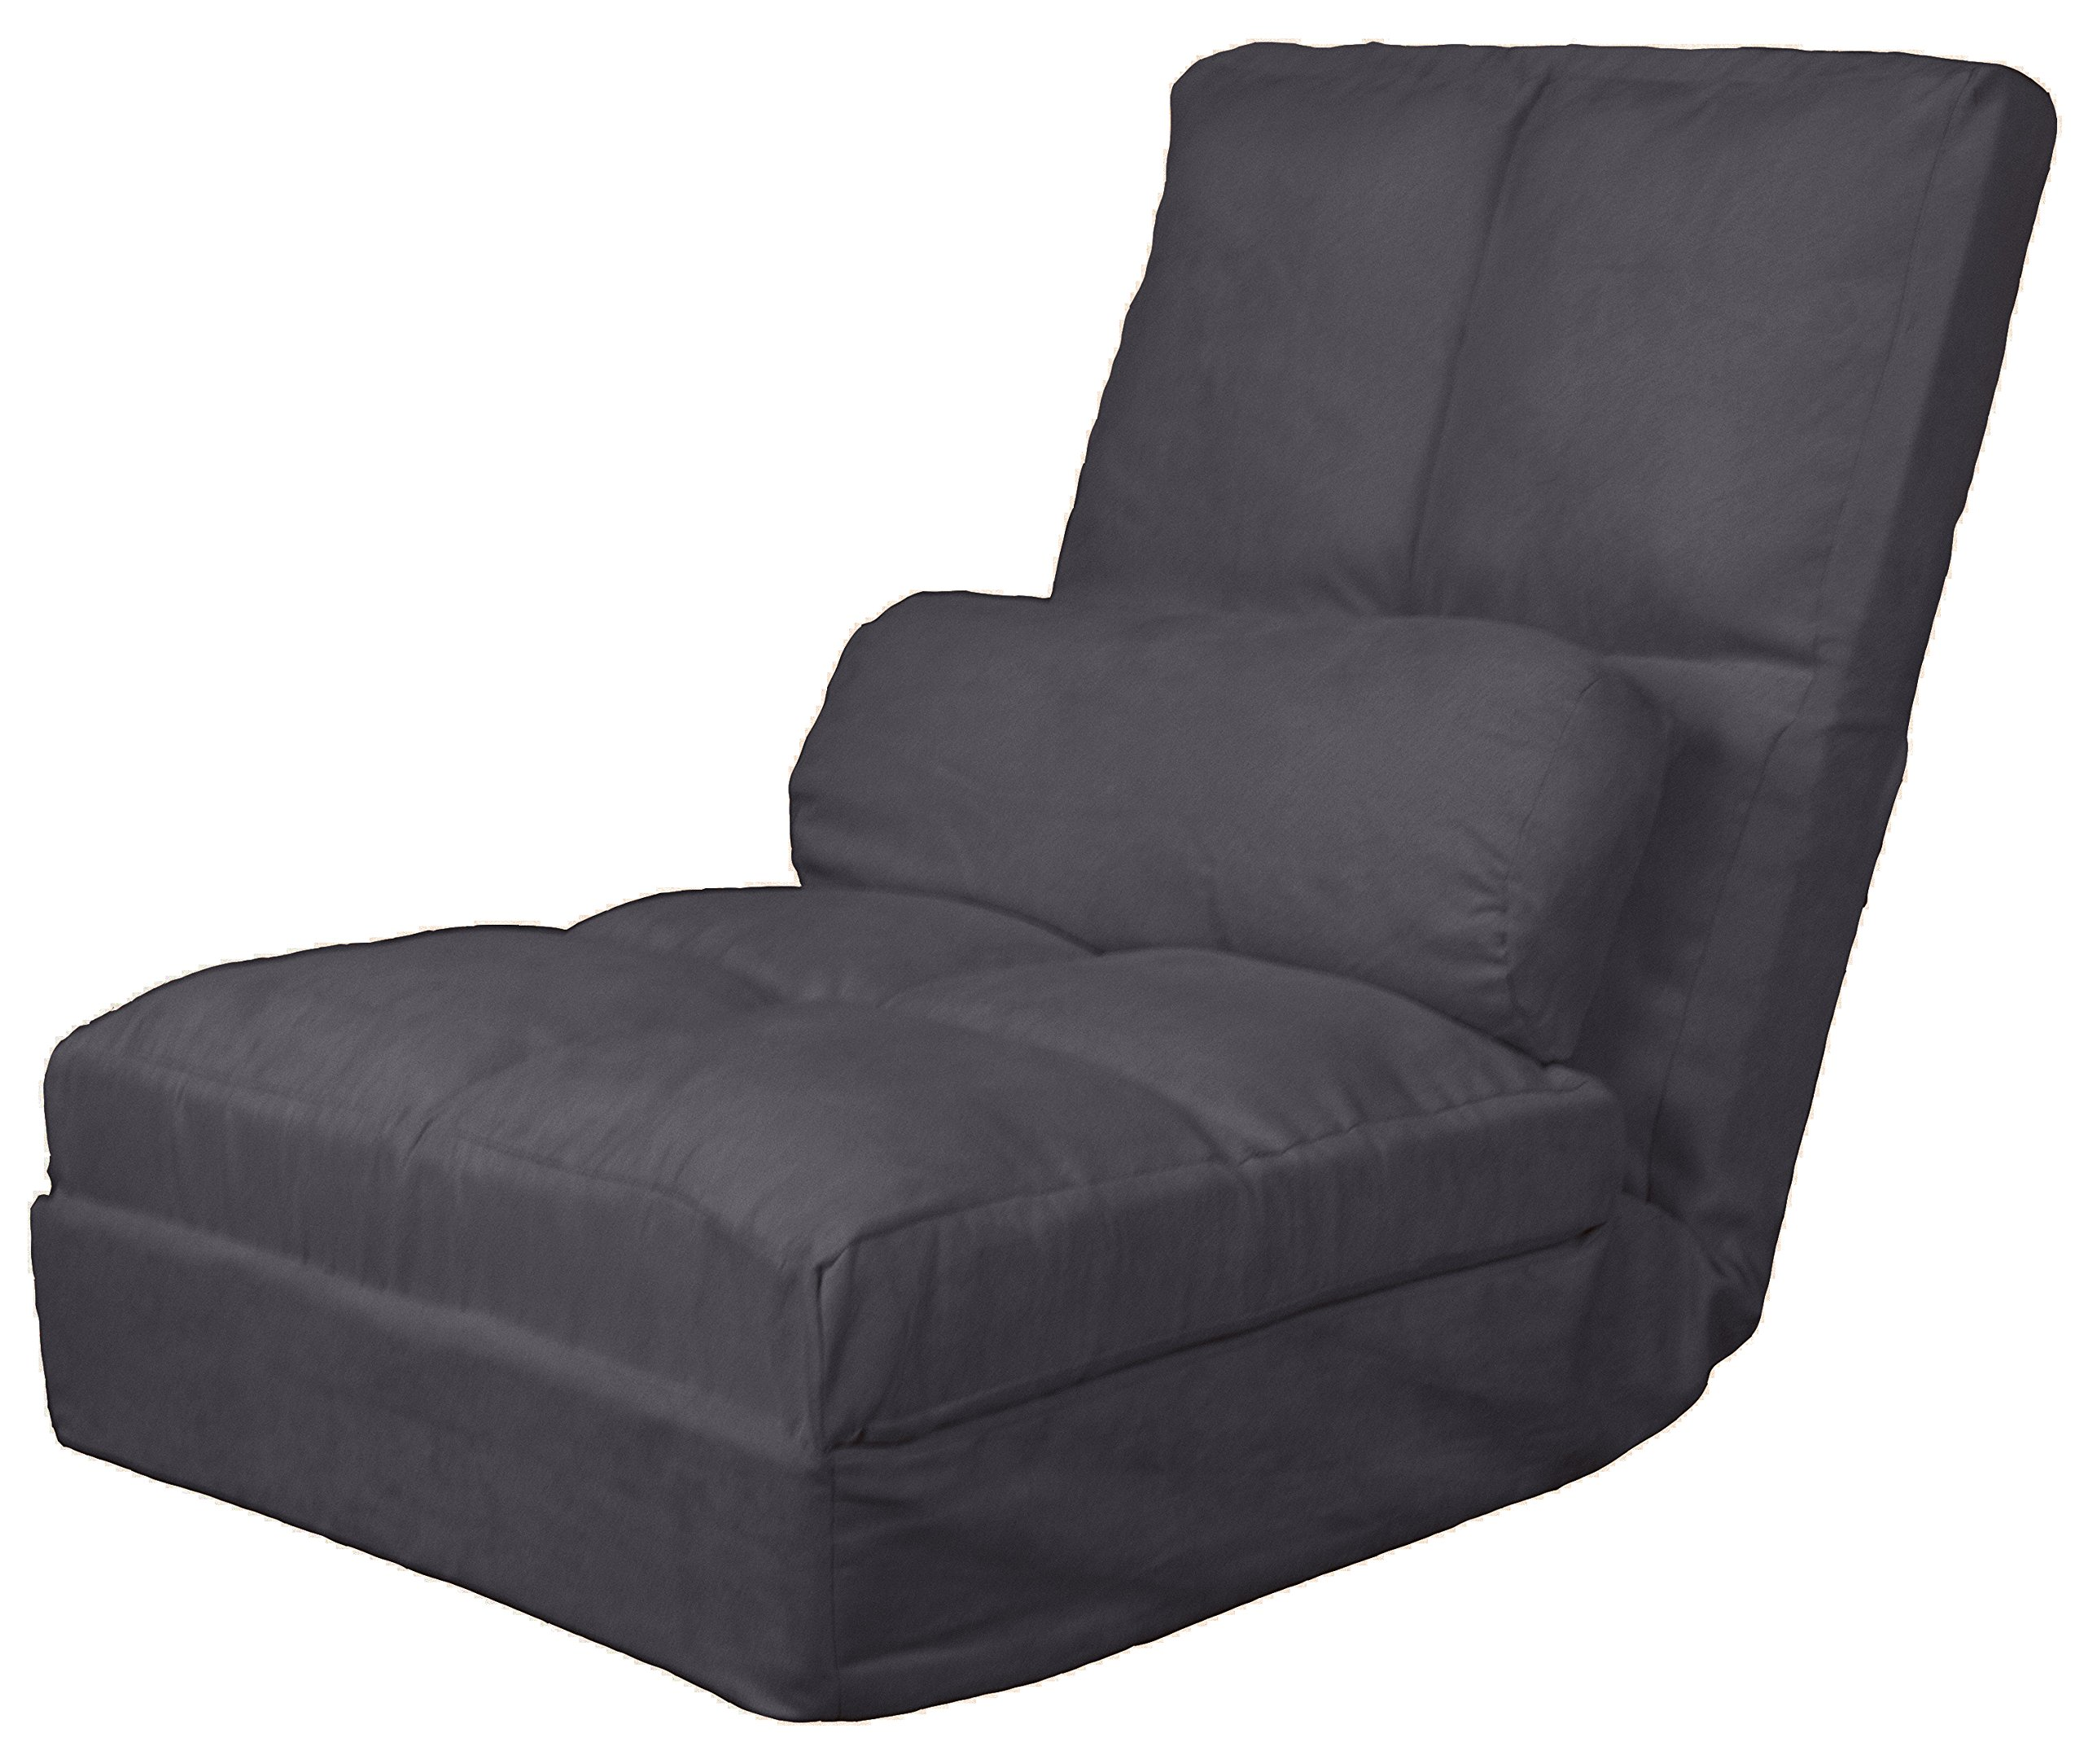 Cosmo Click Clack Convertible Futon Pillow-Top Flip Chair Child-size Sleeper Bed, Microfiber Suede Slate Grey